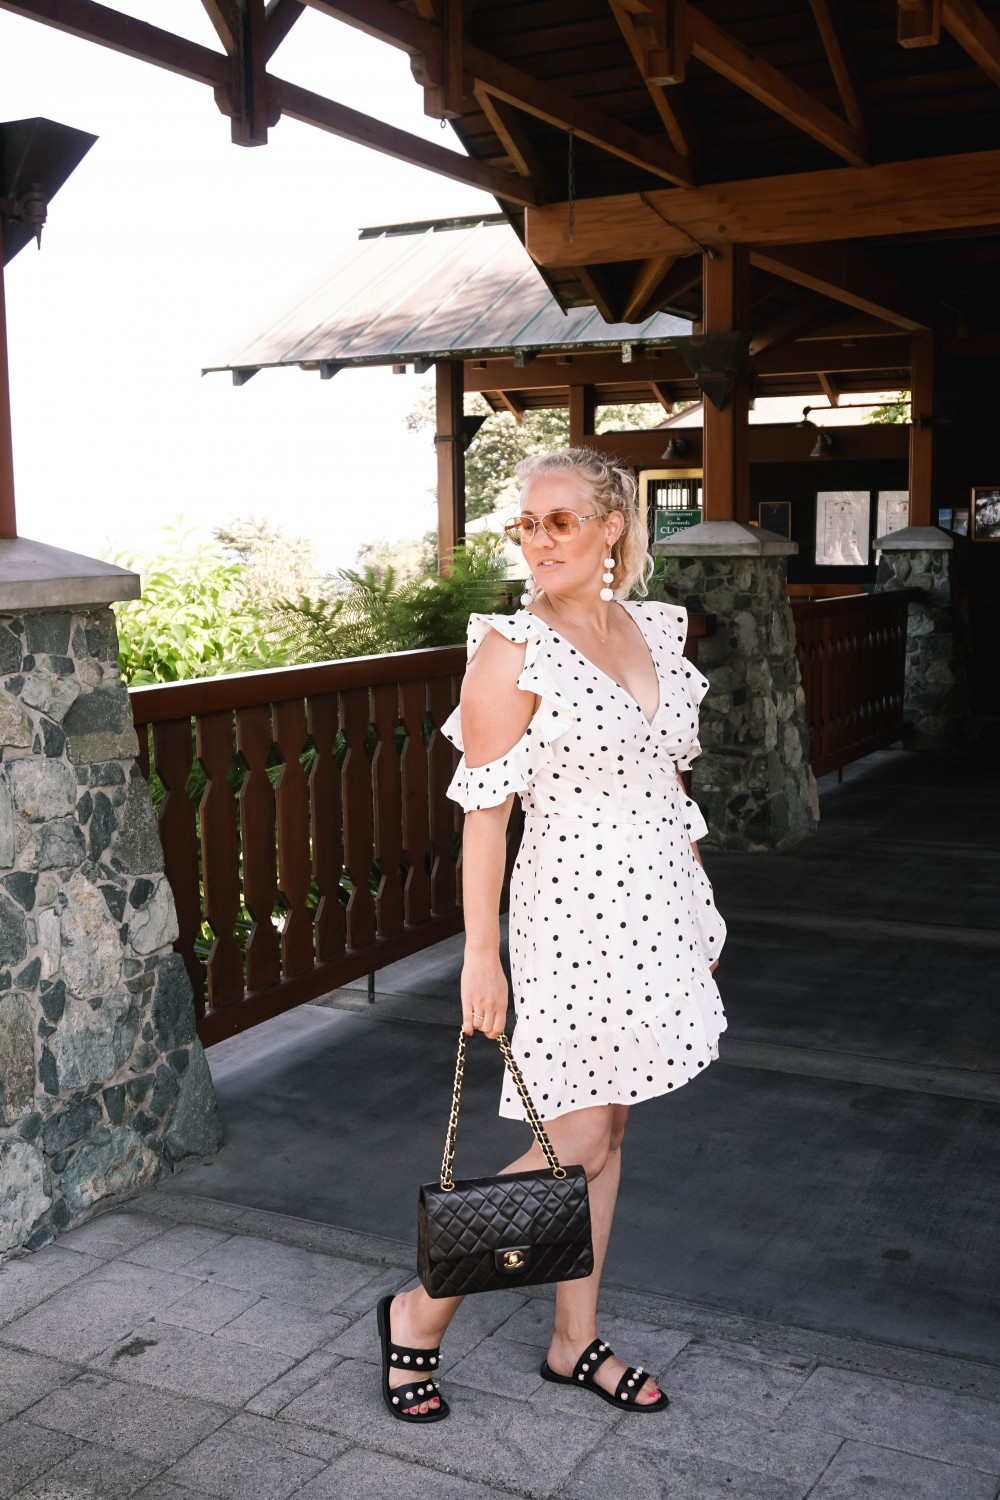 Three Ways to Wear Polka Dots-Polka Dot Outfits-Outfit Inspiration-Borrowed by Design-Polka Dot Wrap Dress-Faux Pearl Sandals-Have Need Want 7